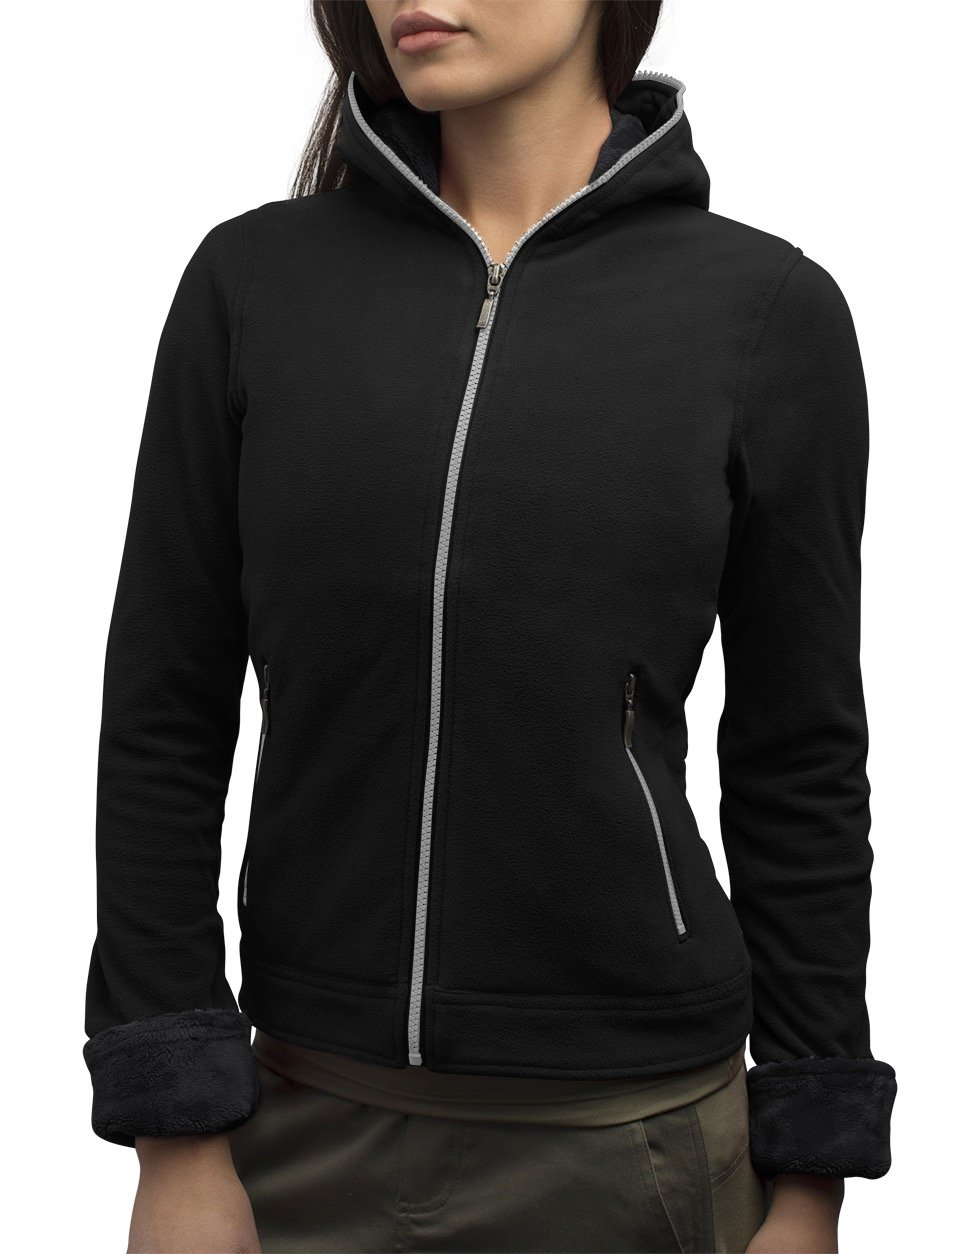 SCOTTeVEST Chloe Hoodie - 14 Pockets - Travel Clothing, Pickpocket Proof MGC XL